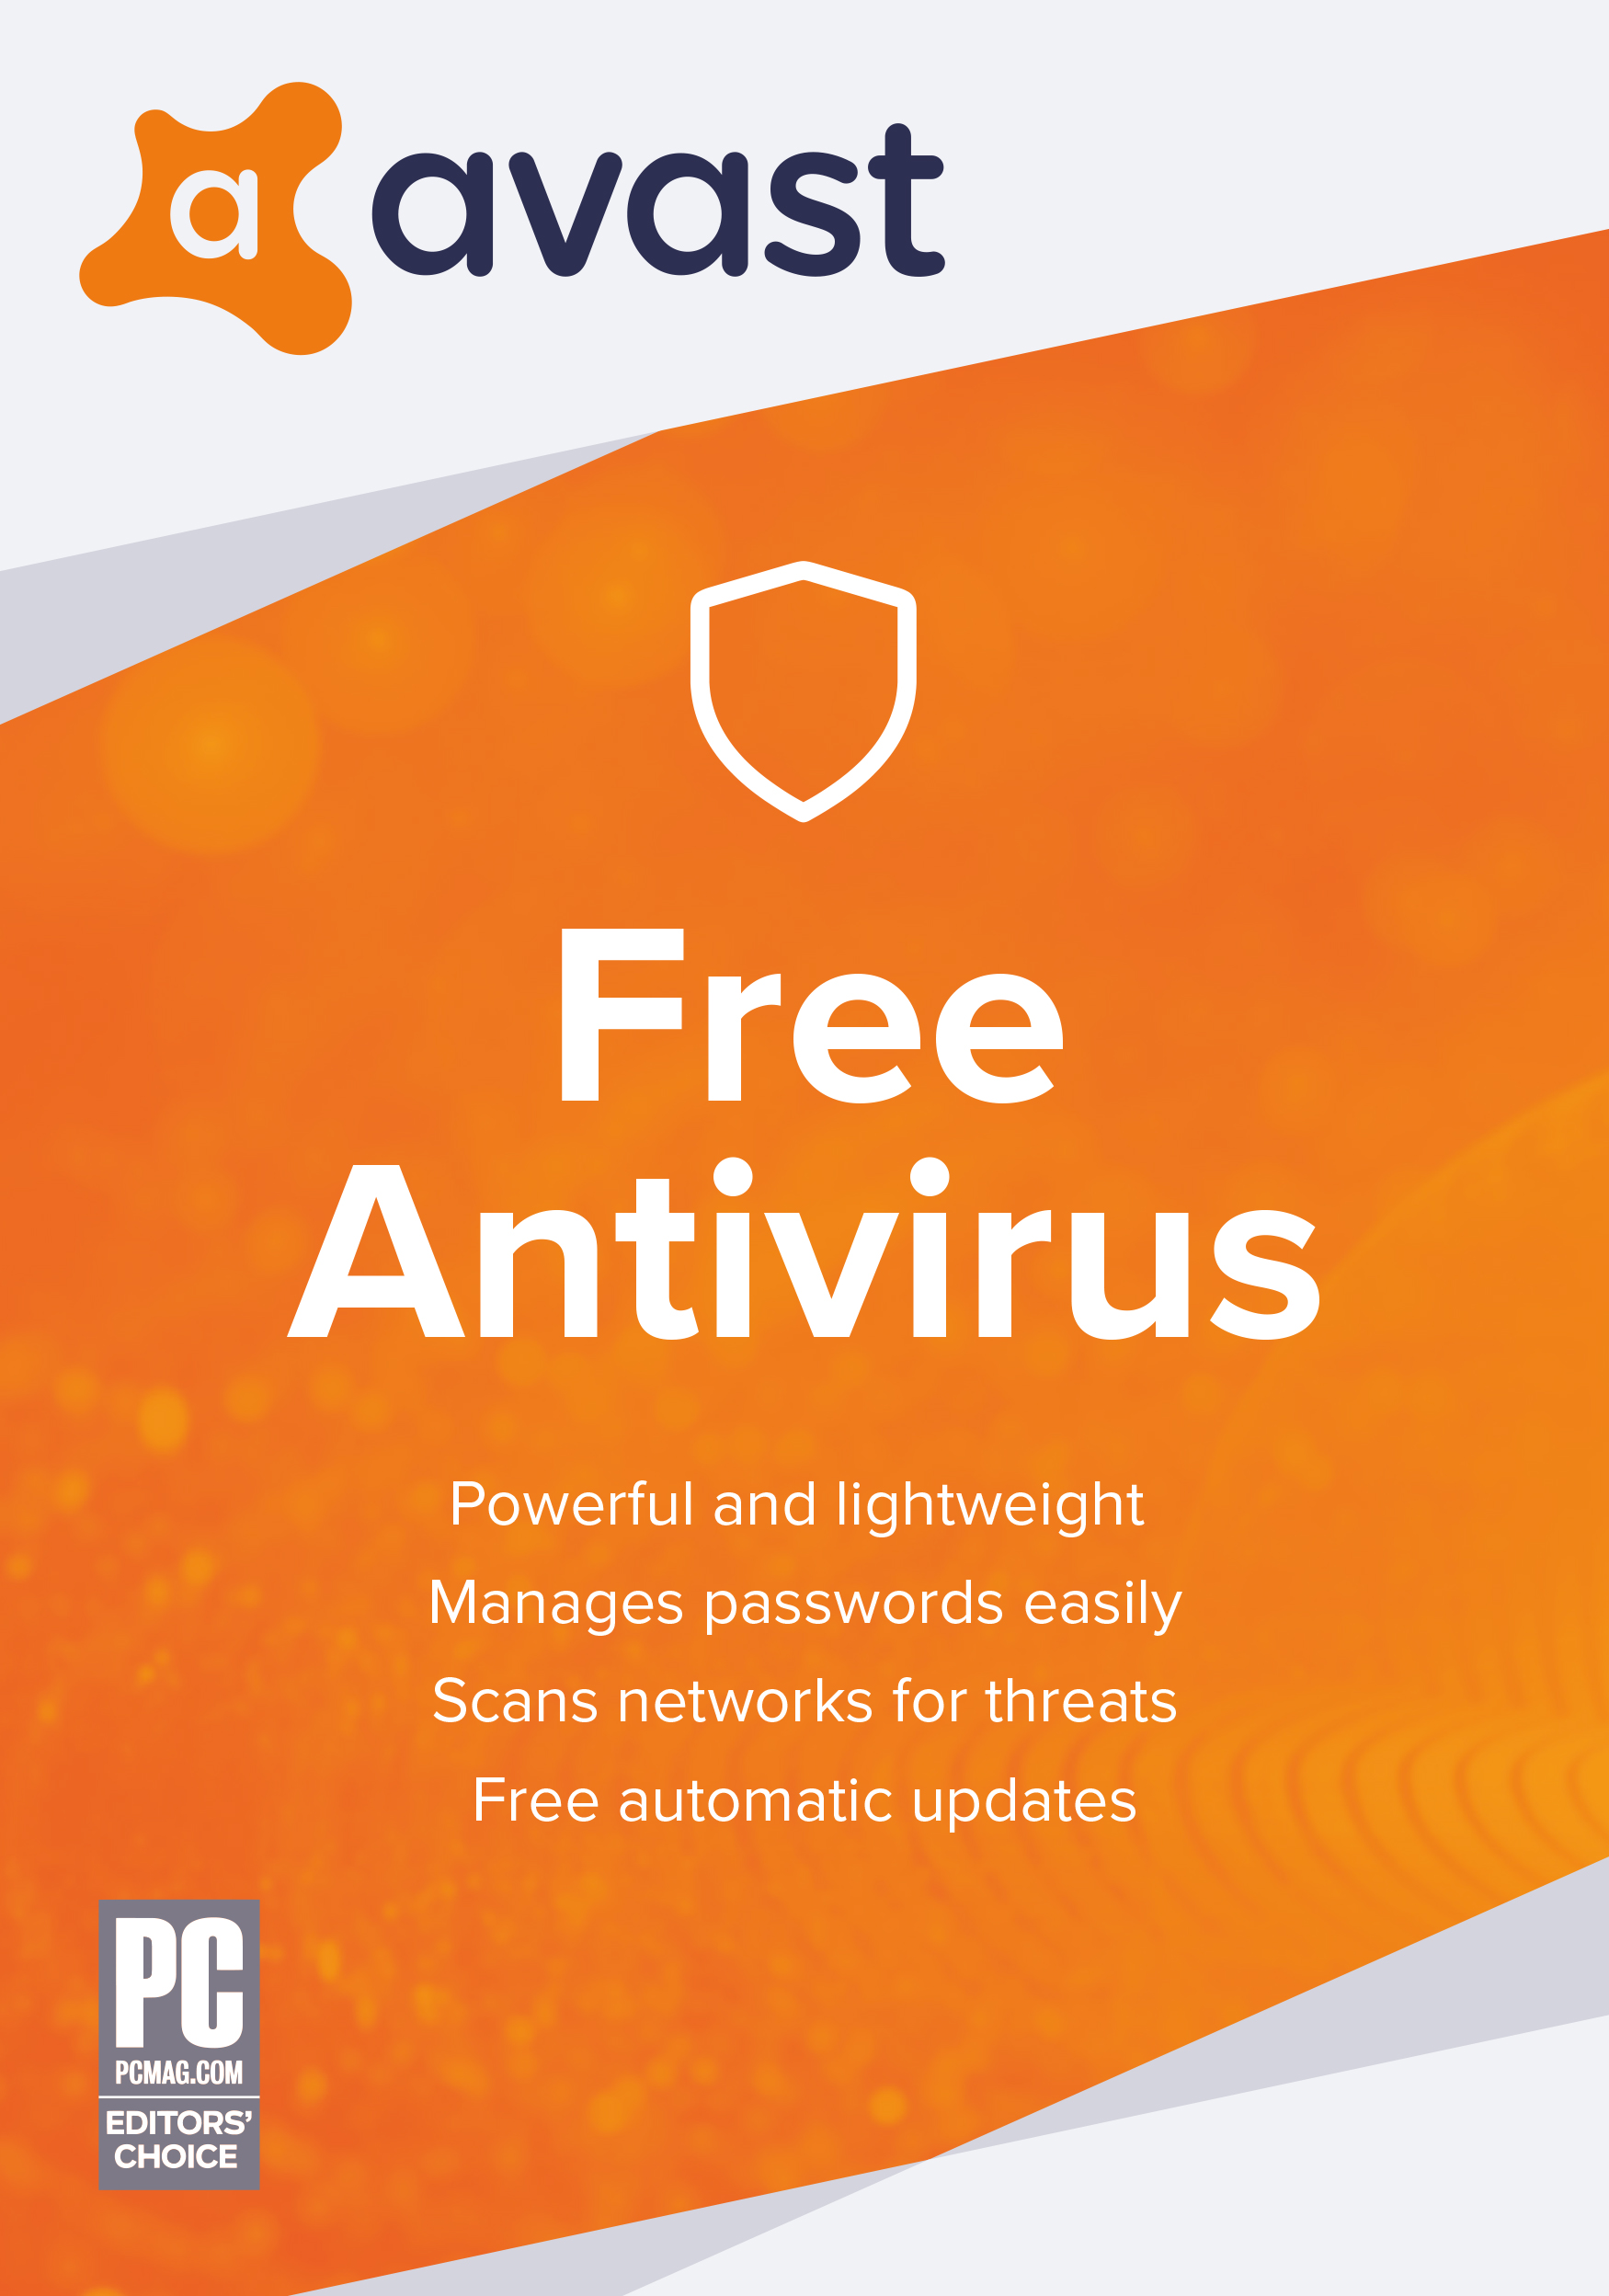 Avast Free Antivirus 2019 [Download]